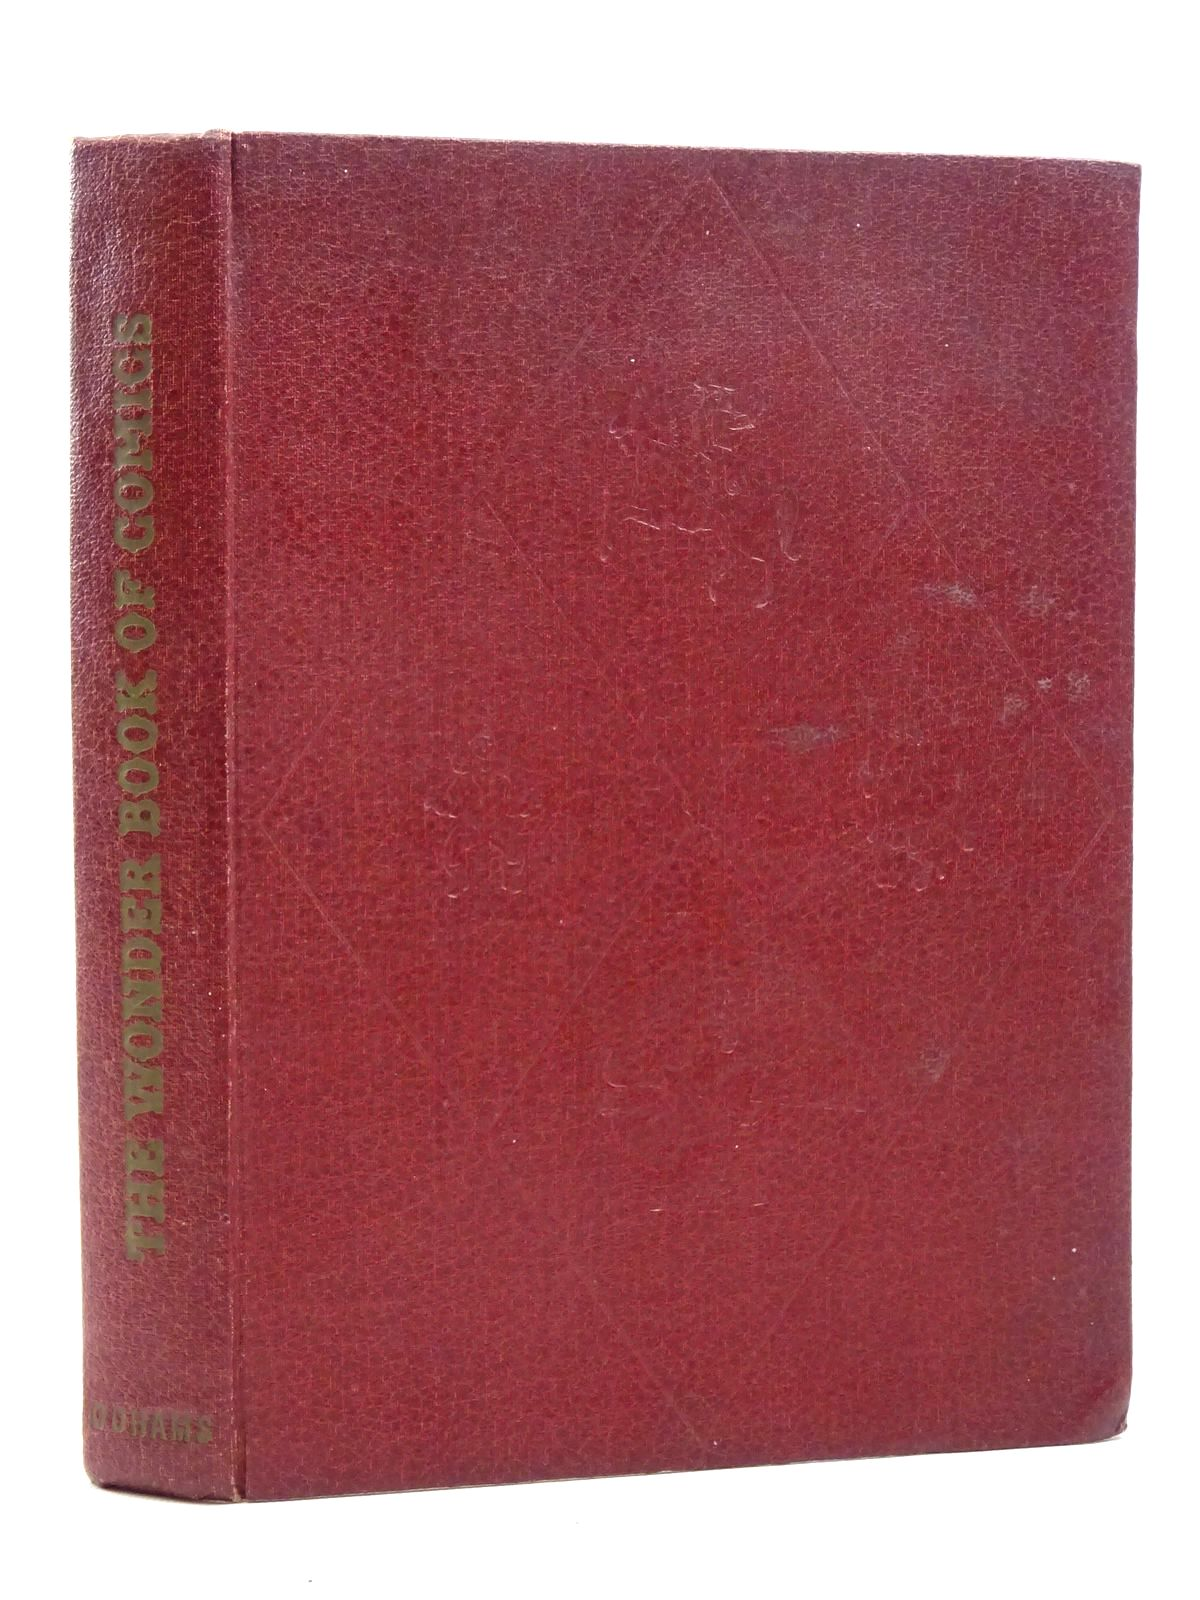 Photo of THE WONDER BOOK OF COMICS written by Blyton, Enid Duff, Douglas V. Johns, W.E. Richards, Frank et al,  illustrated by Nickless, Will et al.,  published by Odhams Press Ltd. (STOCK CODE: 2125369)  for sale by Stella & Rose's Books